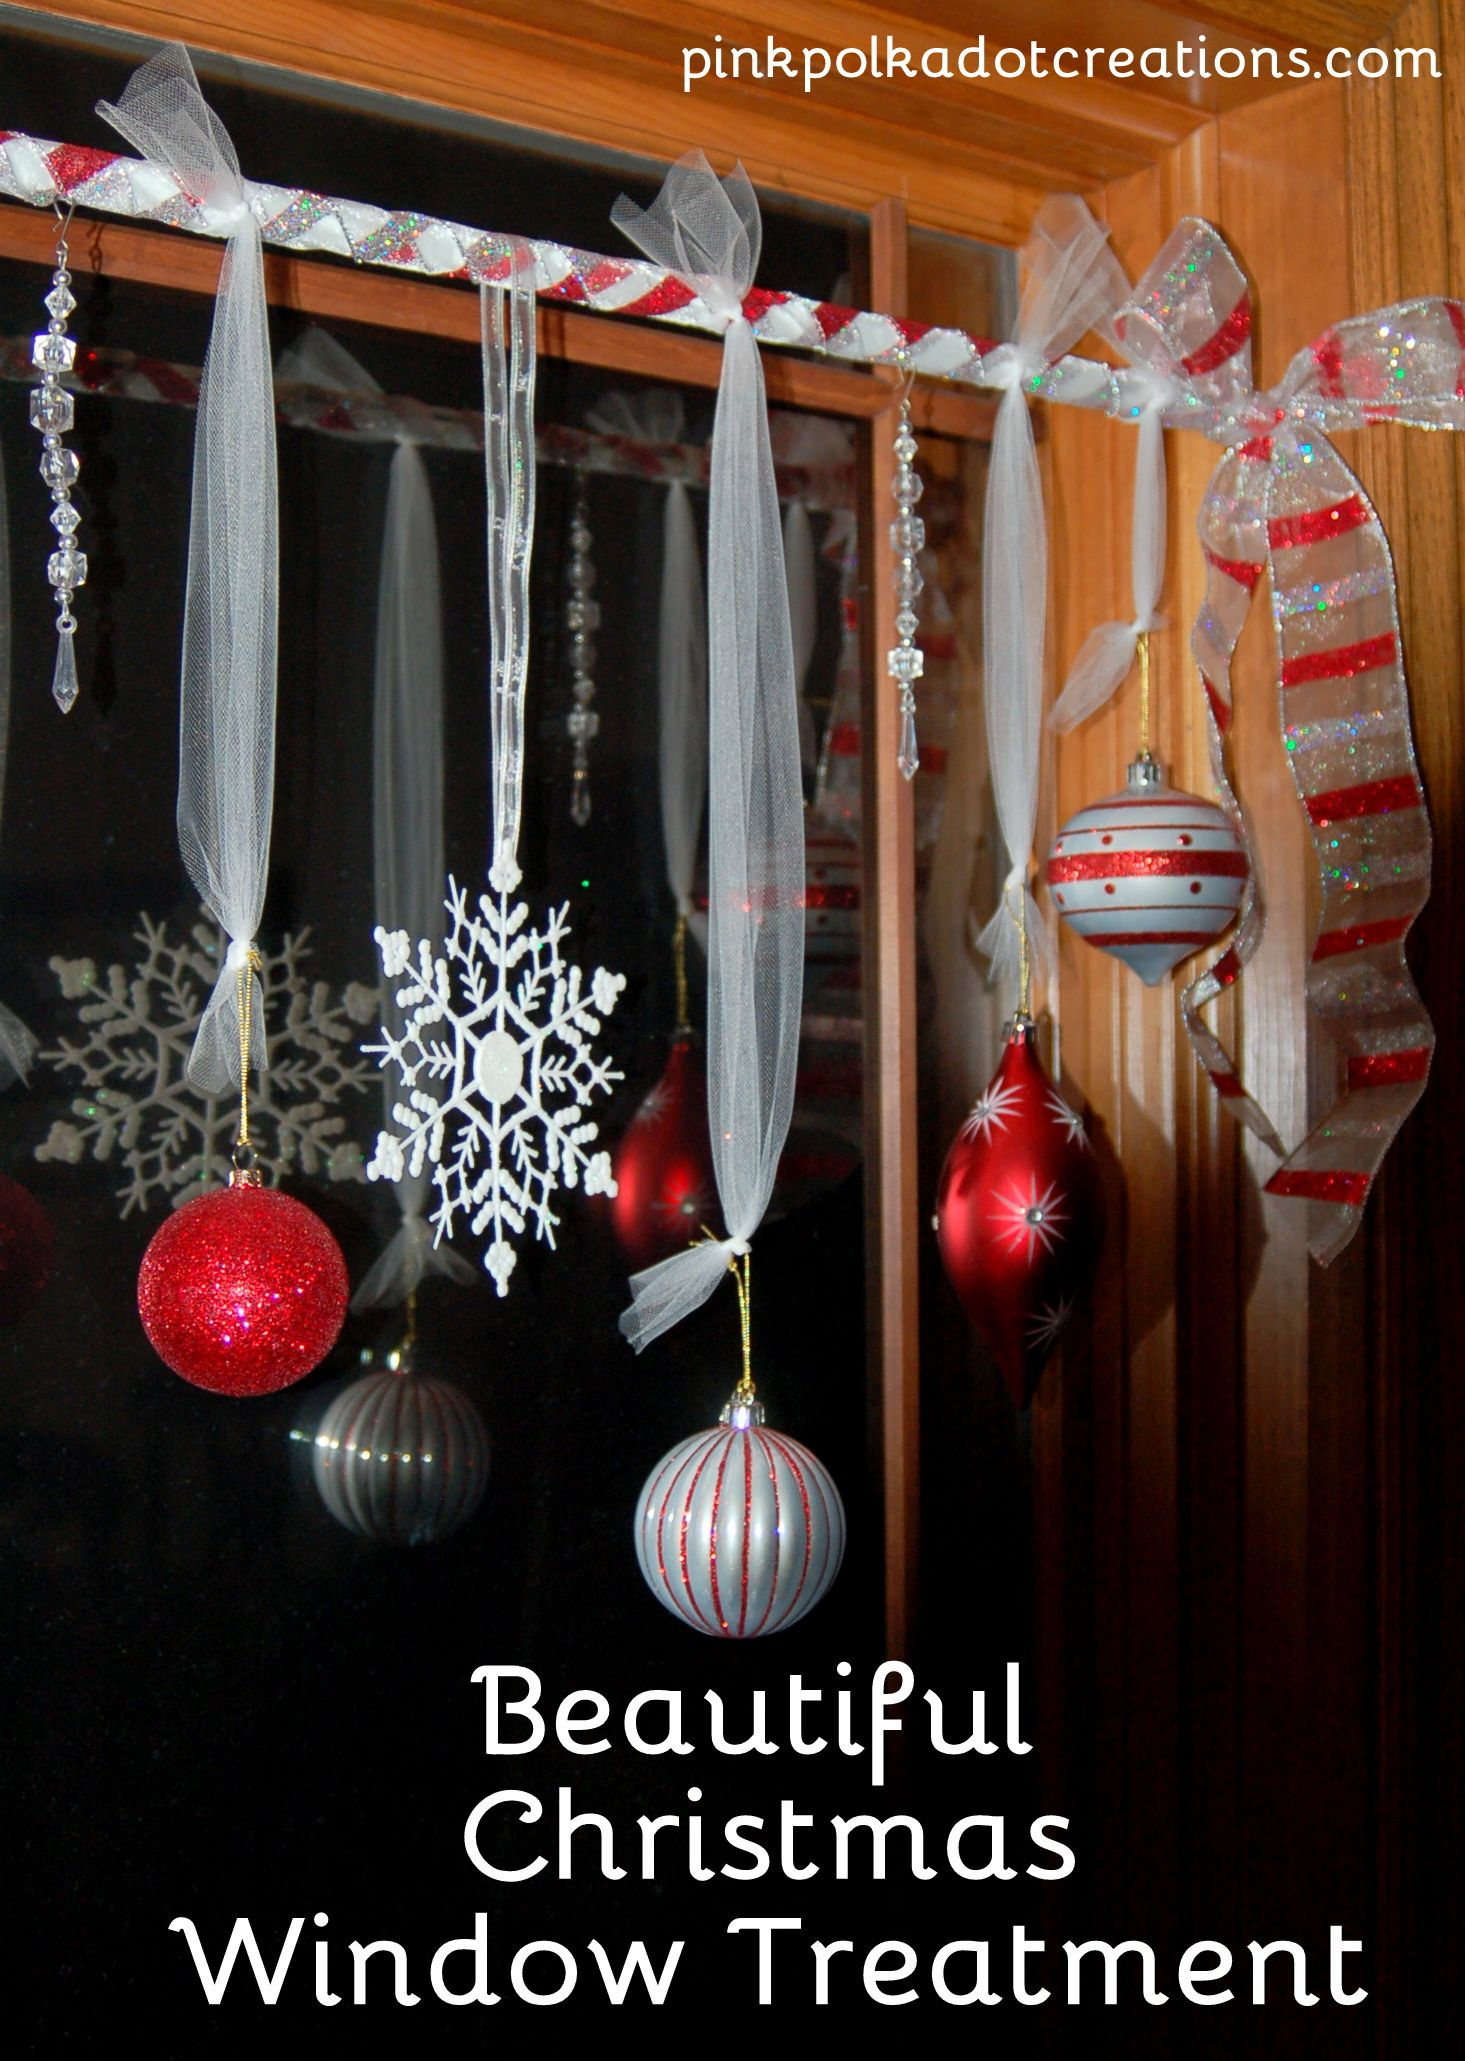 Homes Decorated For Christmas On The Inside pink polka dot creations: beautiful christmas window treatment